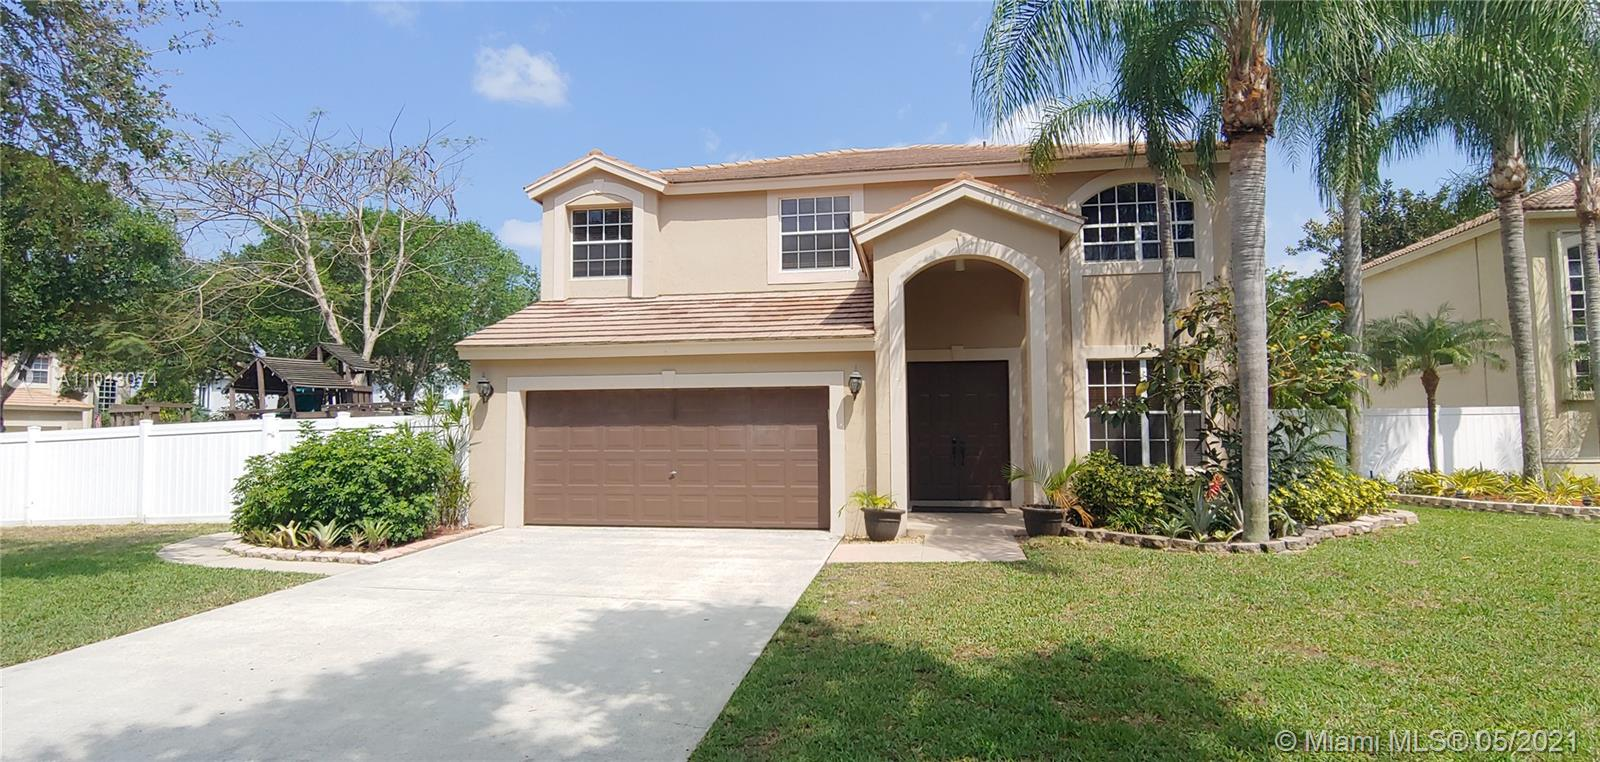 Property for sale at 5821 NW 62nd St, Parkland,  Florida 33067